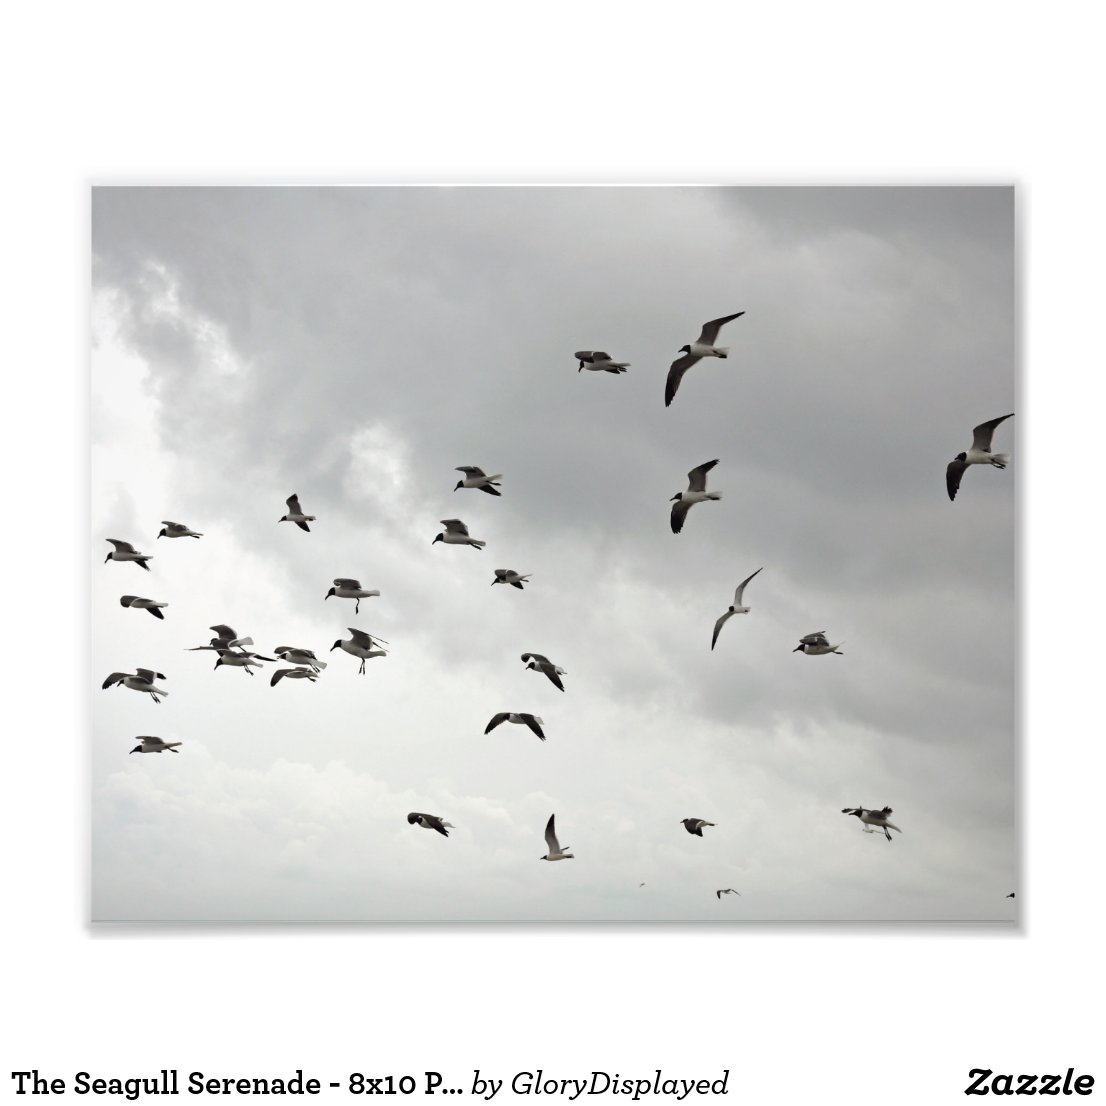 The Seagull Serenade - 8x10 Photo Print